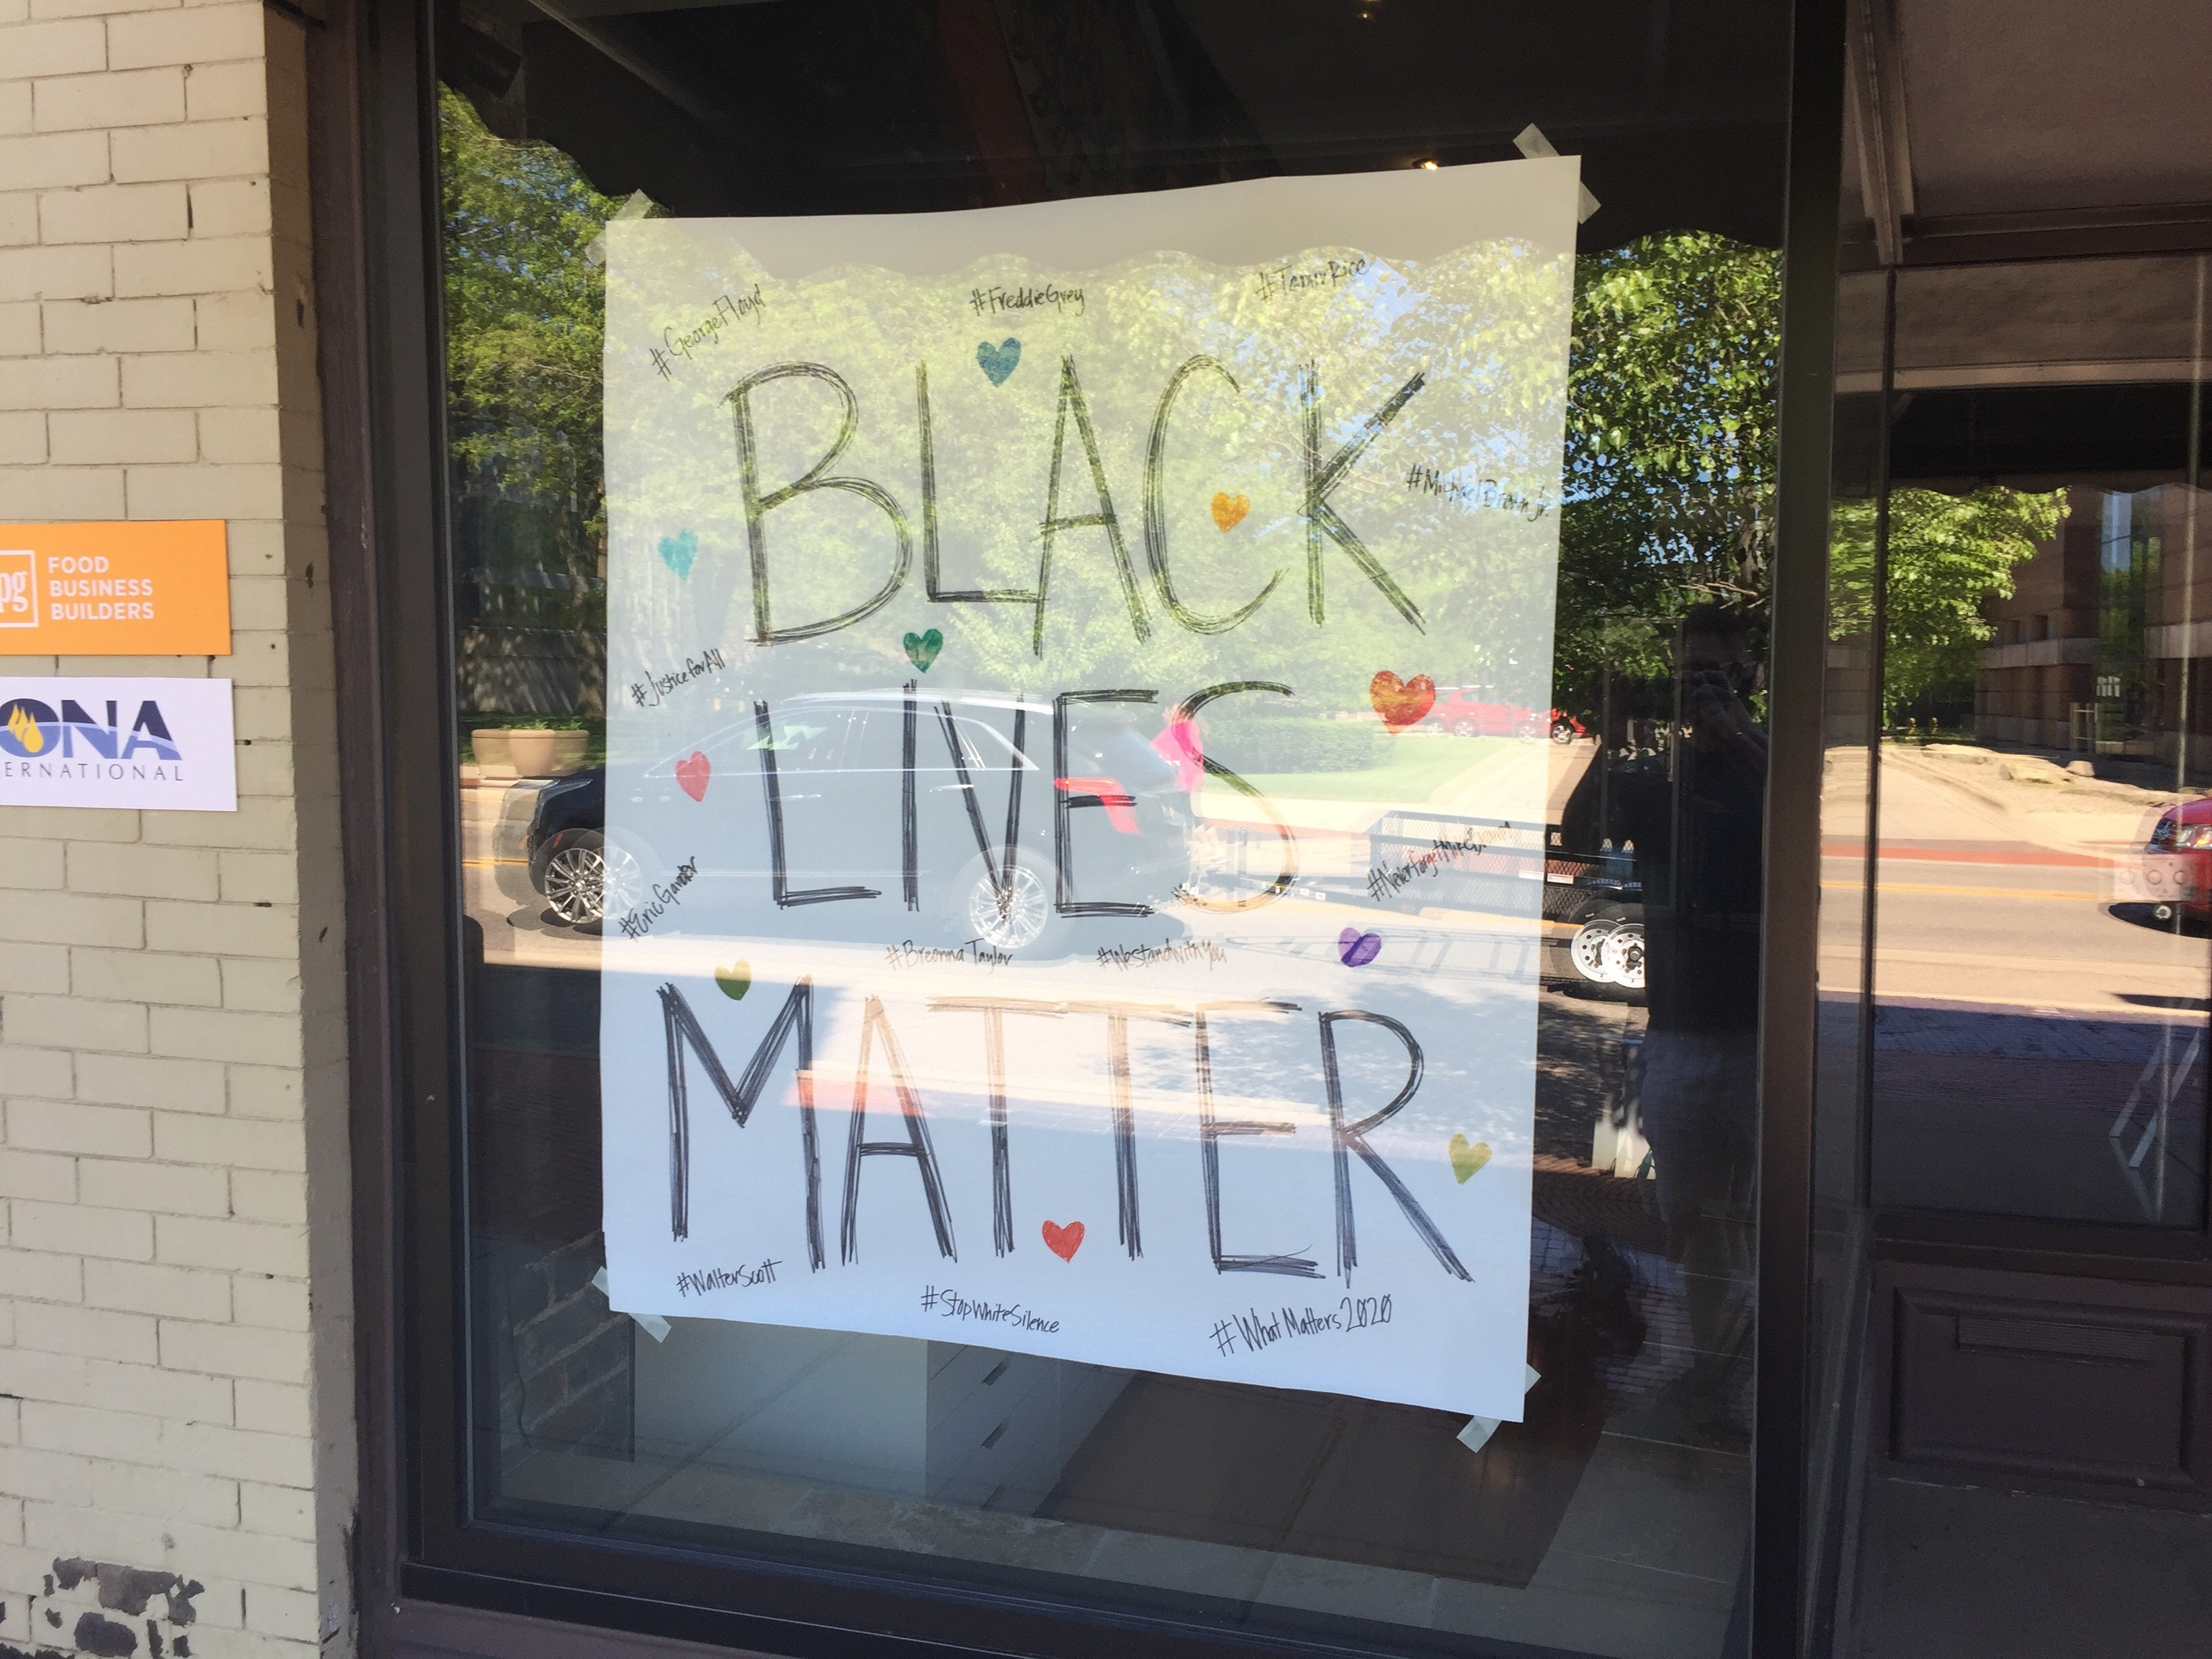 Businesses taped signs to their windows in Battle Creek in protest of the death of George Floyd. (WWMT/Matt Miller)